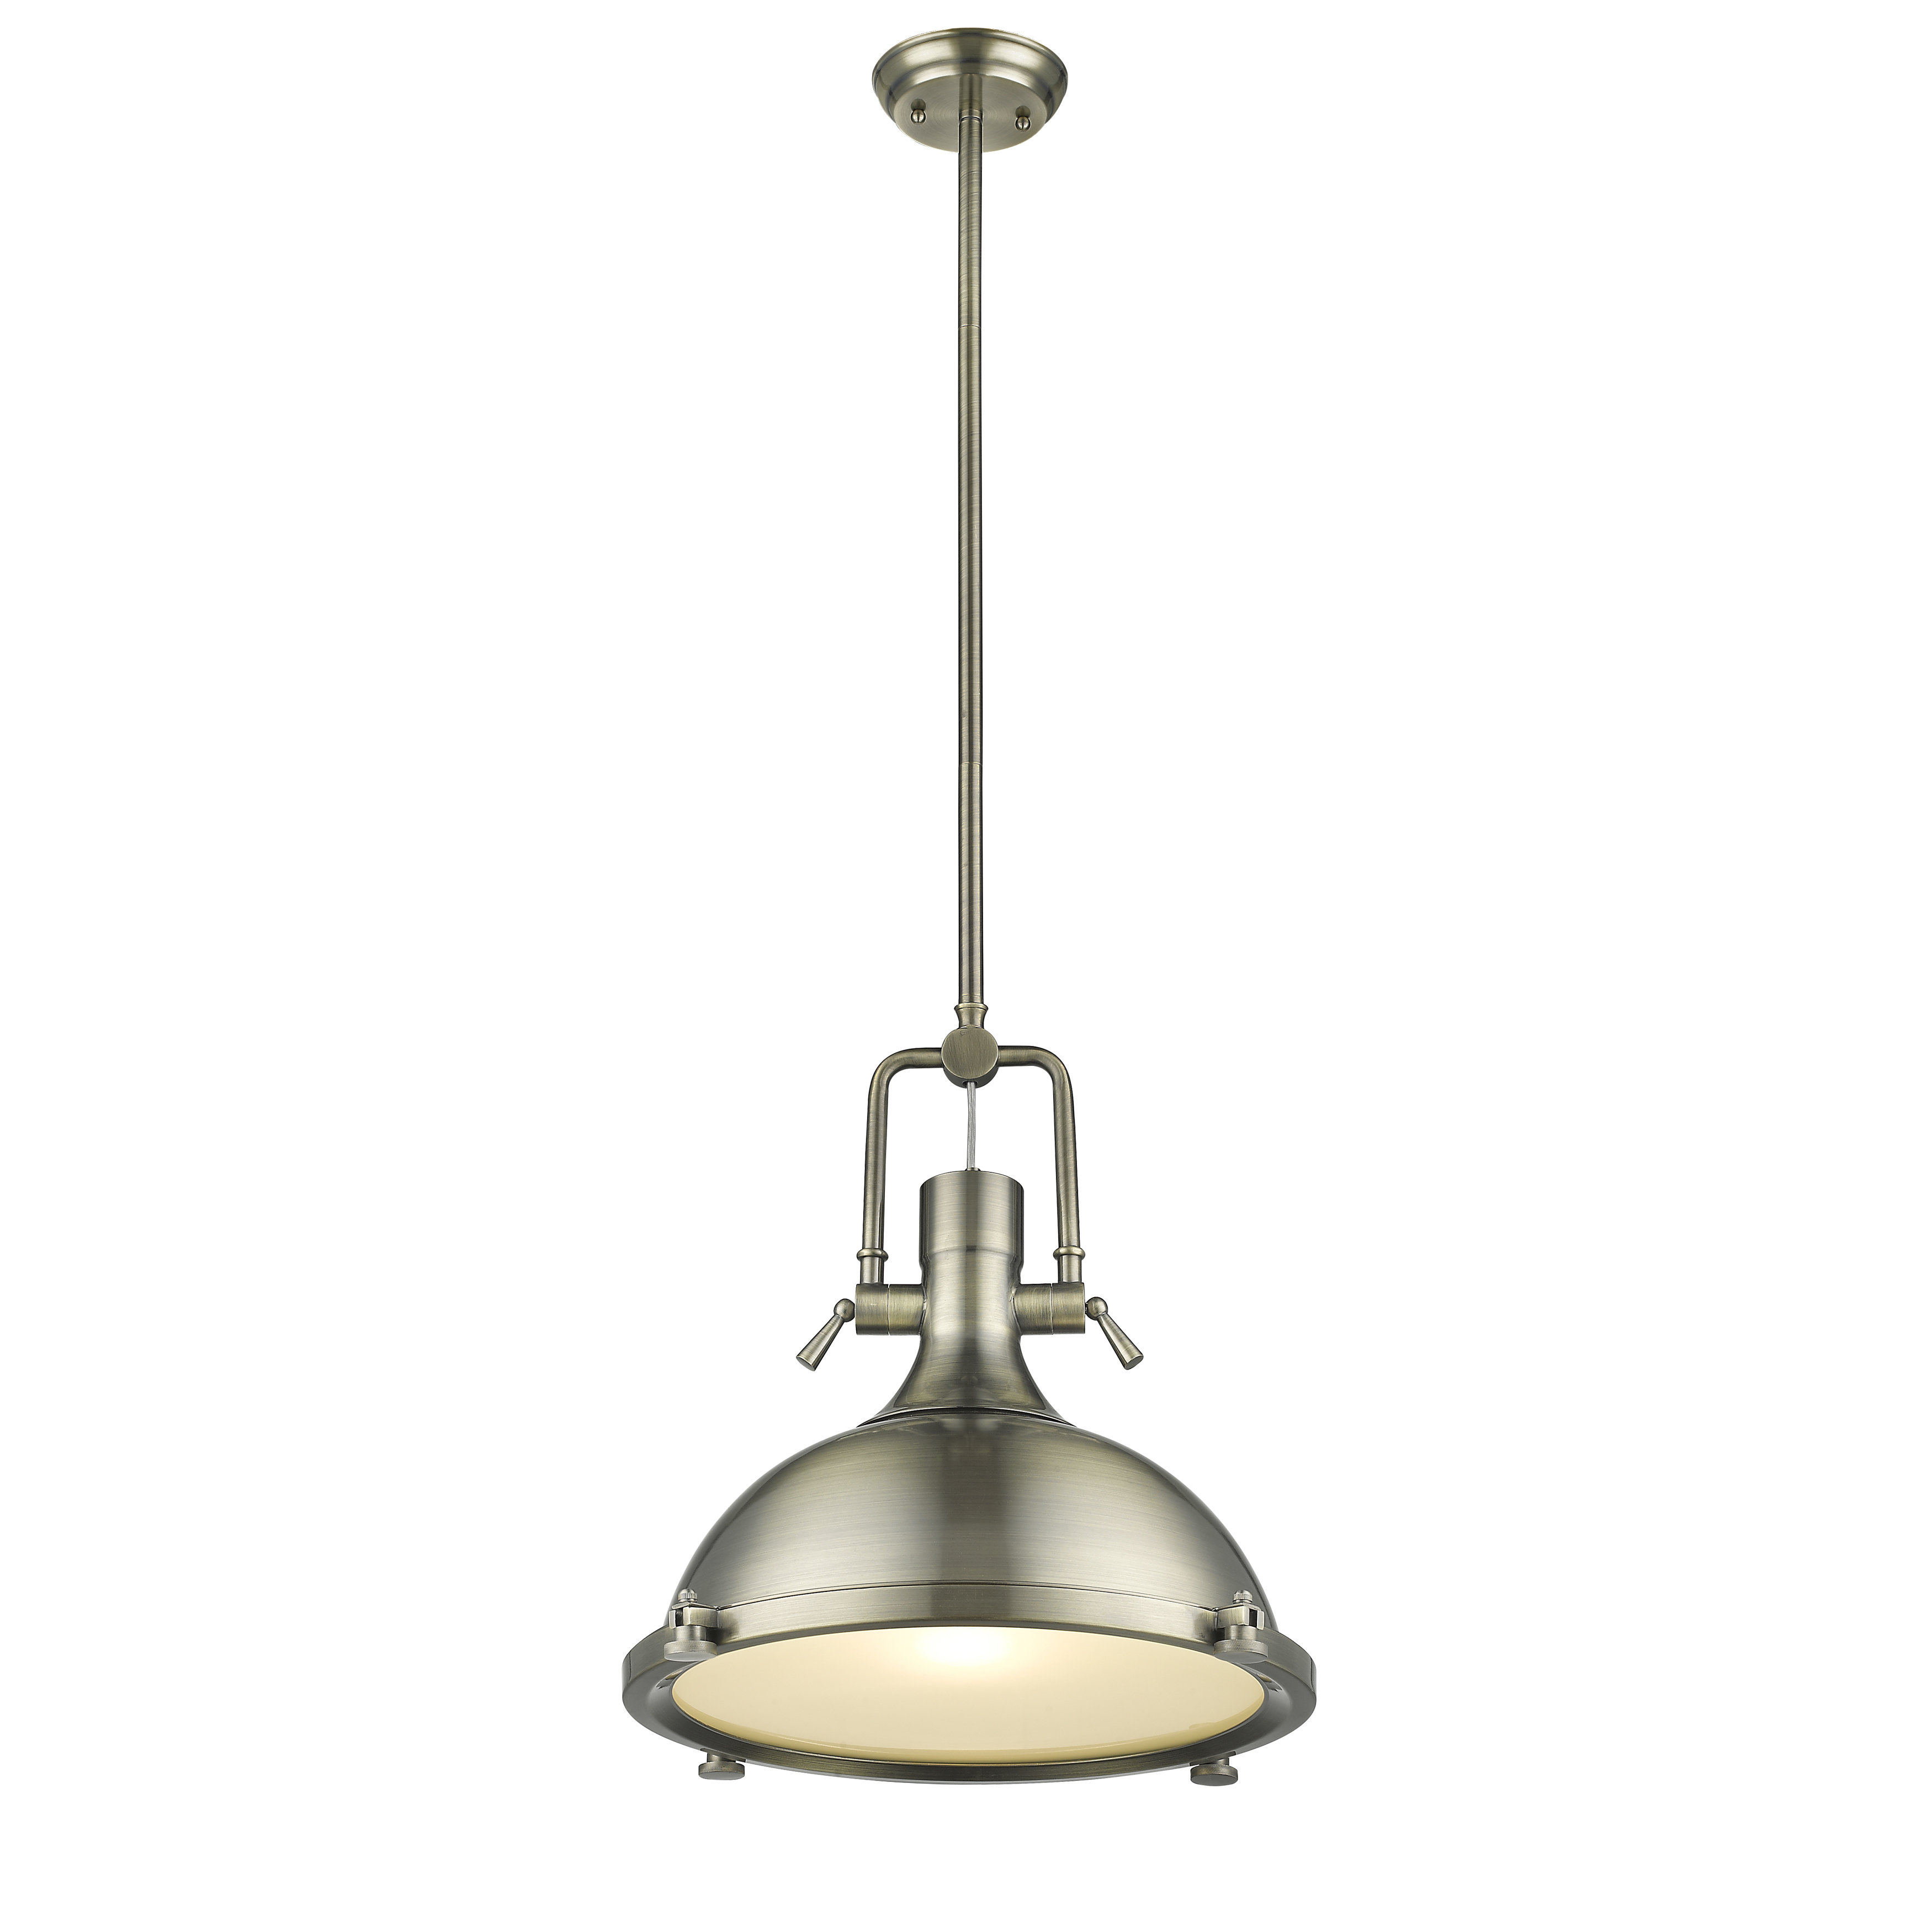 Nolan 1 Light Single Dome Pendant Intended For Freeda 1 Light Single Dome Pendants (View 17 of 30)